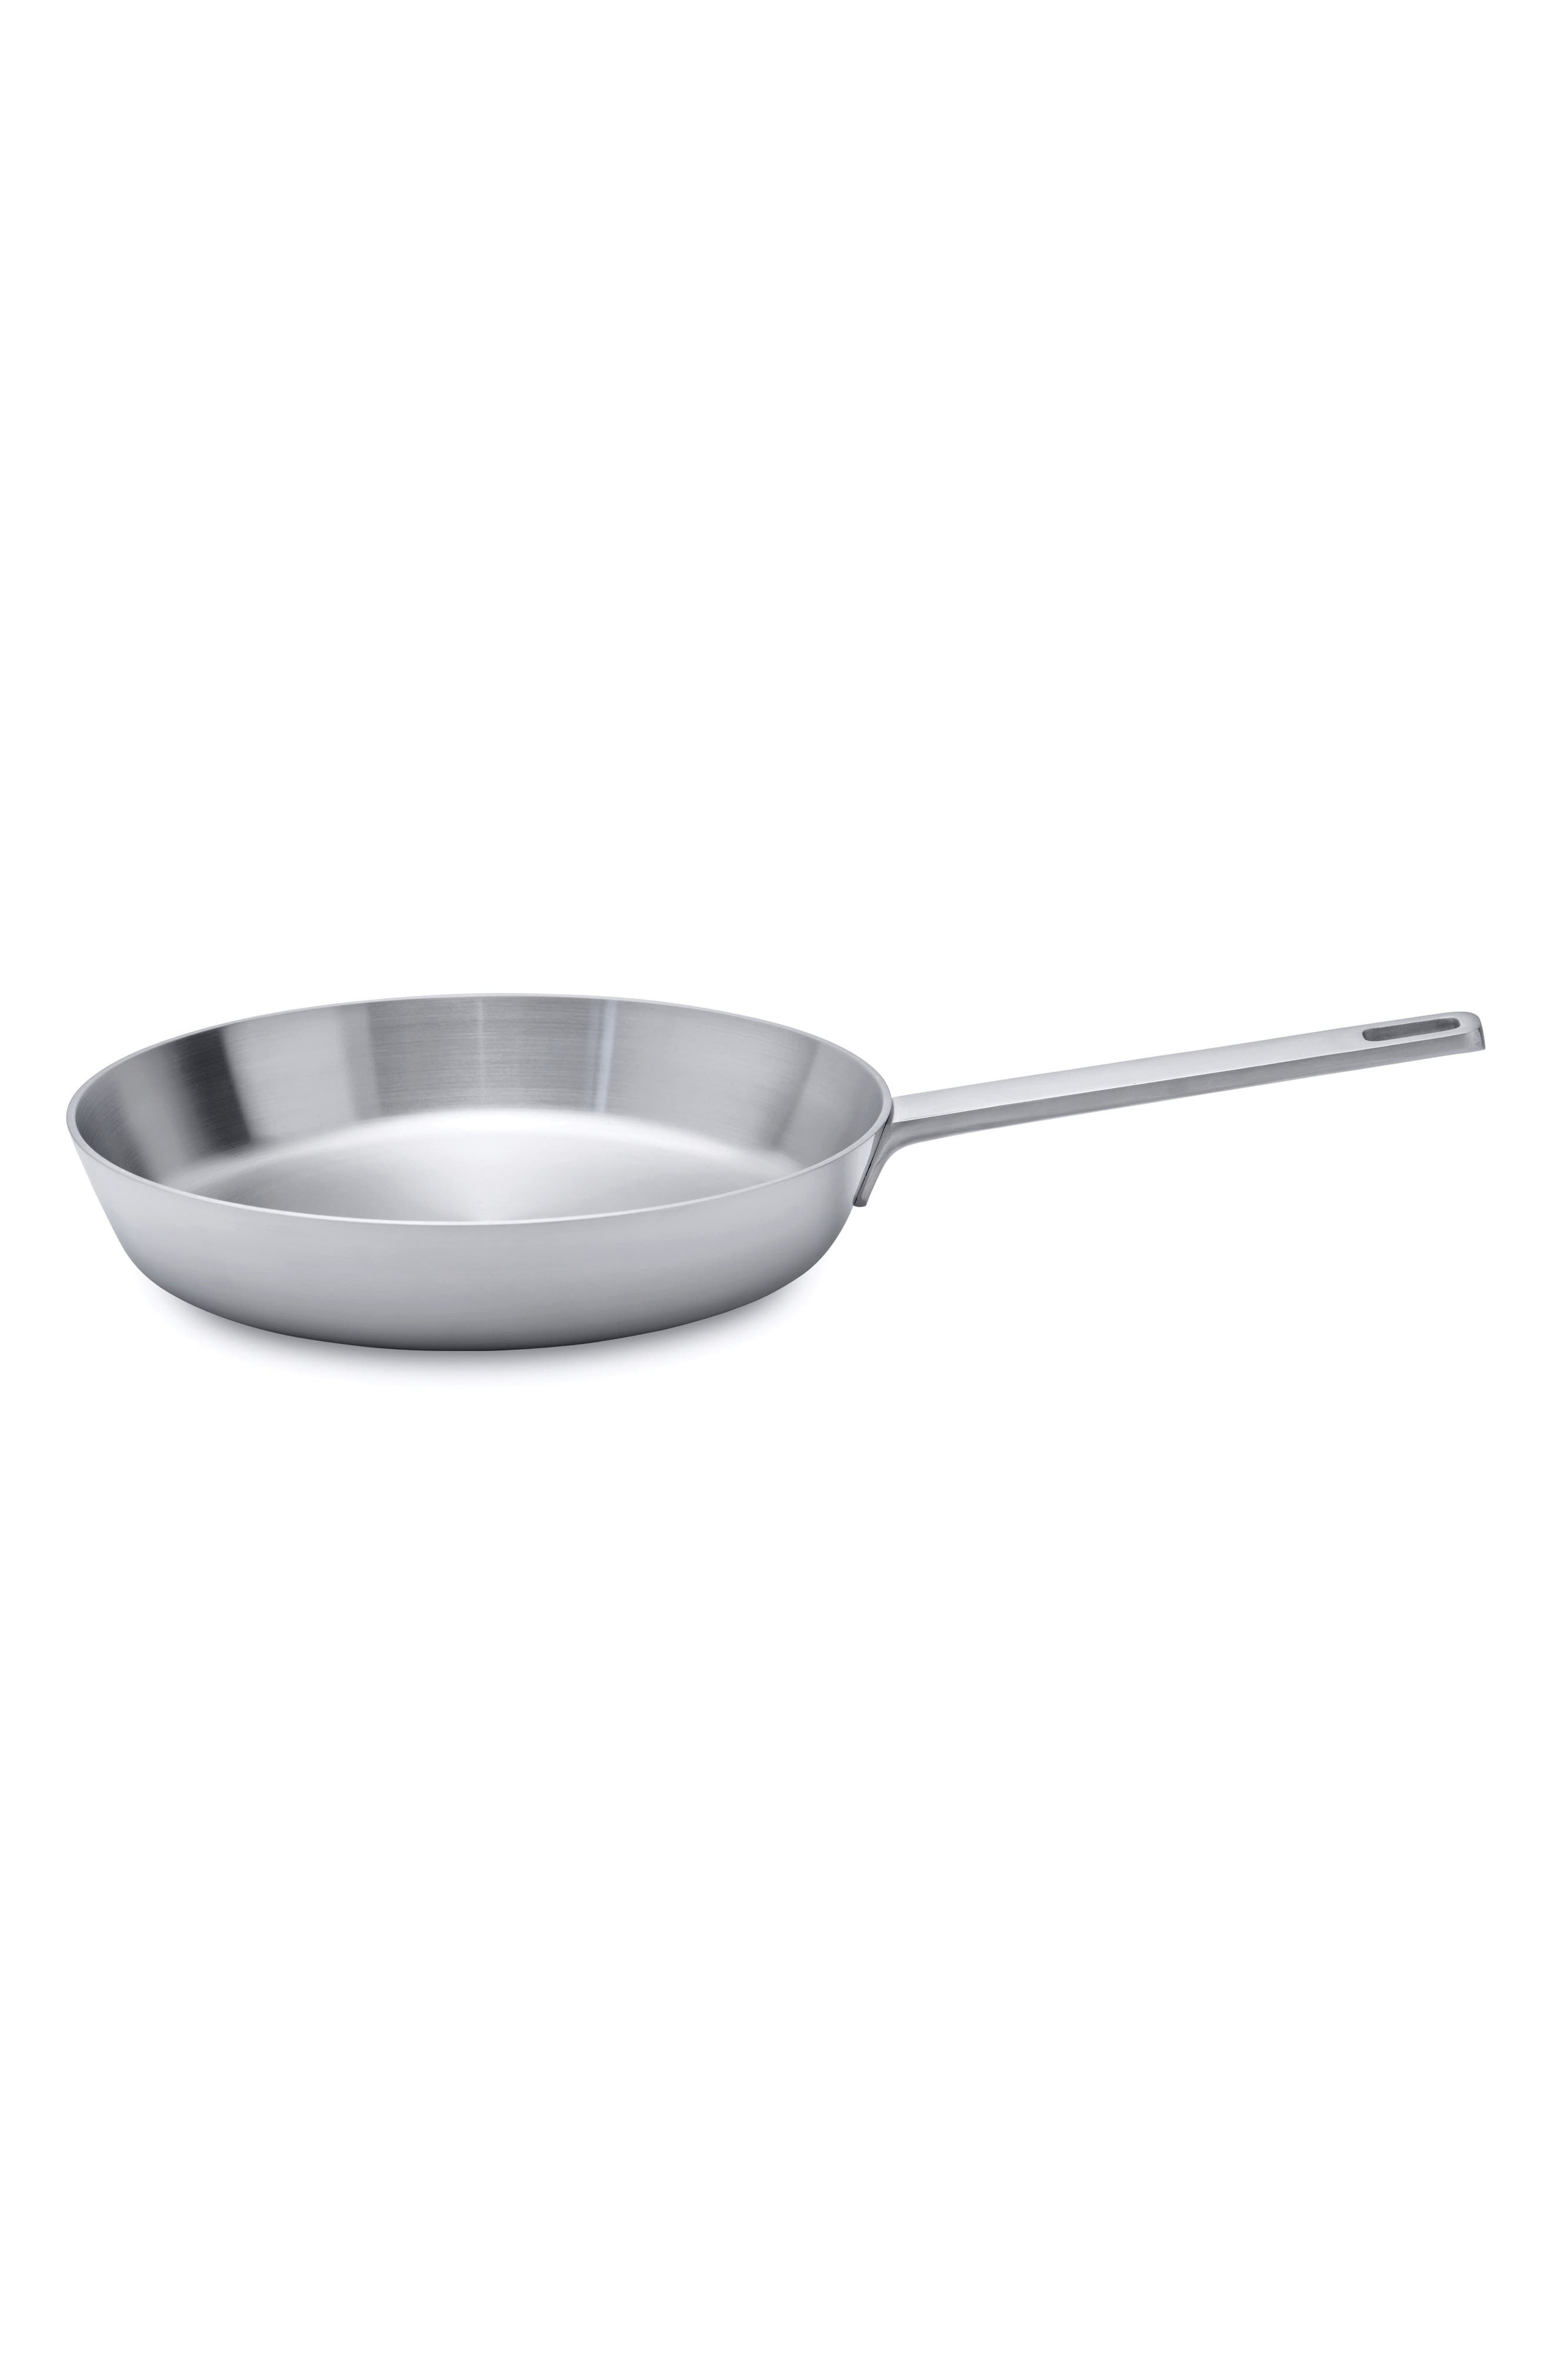 "Image of BergHOFF Ron 5-Ply 10.25"" Fry Pan"